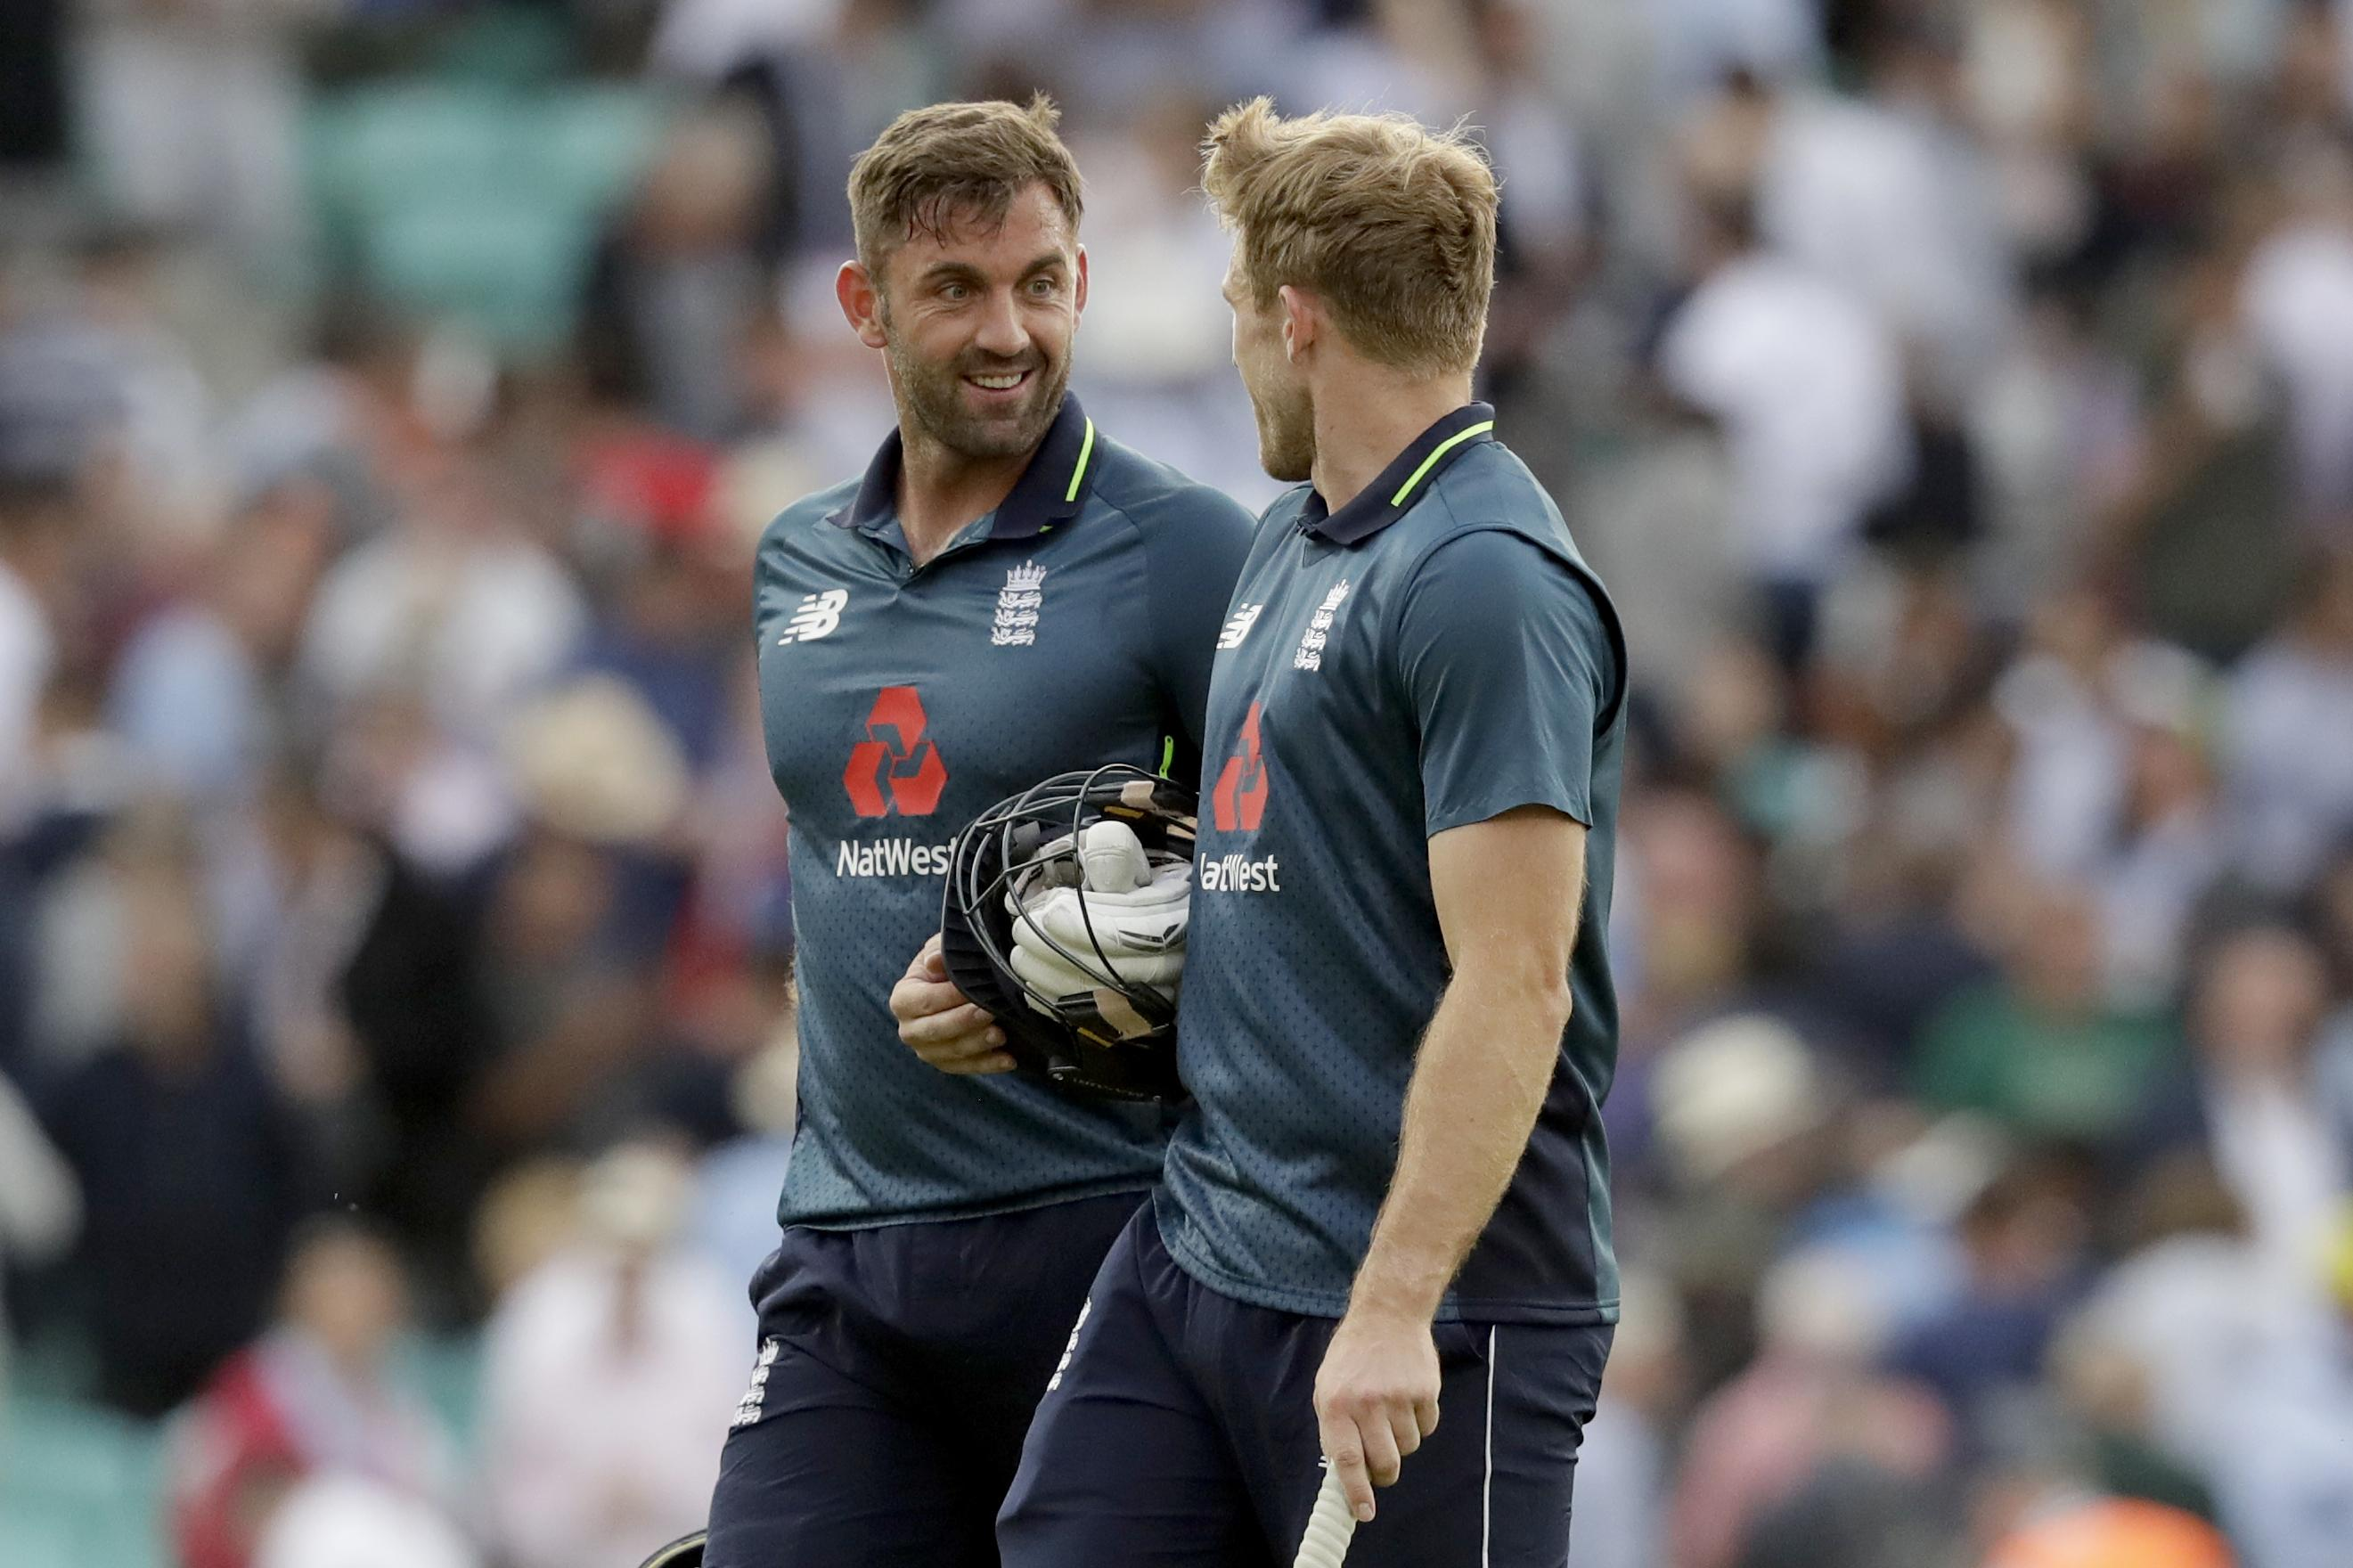 David Willey and Liam Plunkett celebrate after seeing England home